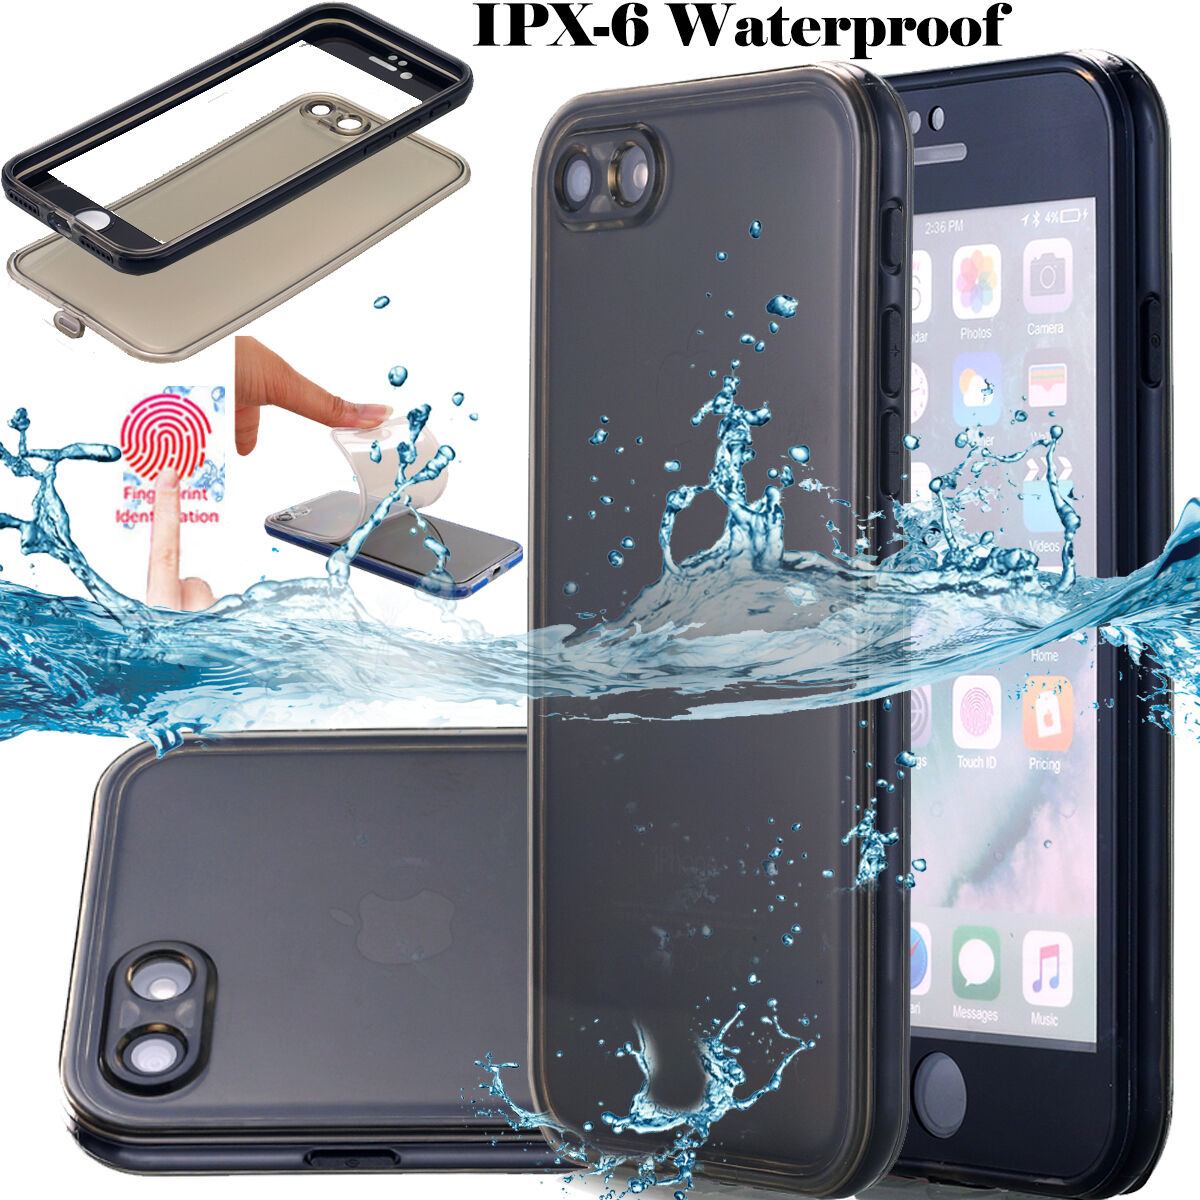 waterproof-shockproof-hybrid-rubber-tpu-phone-case-cover-f-iphone-6-6s-7-8-plus